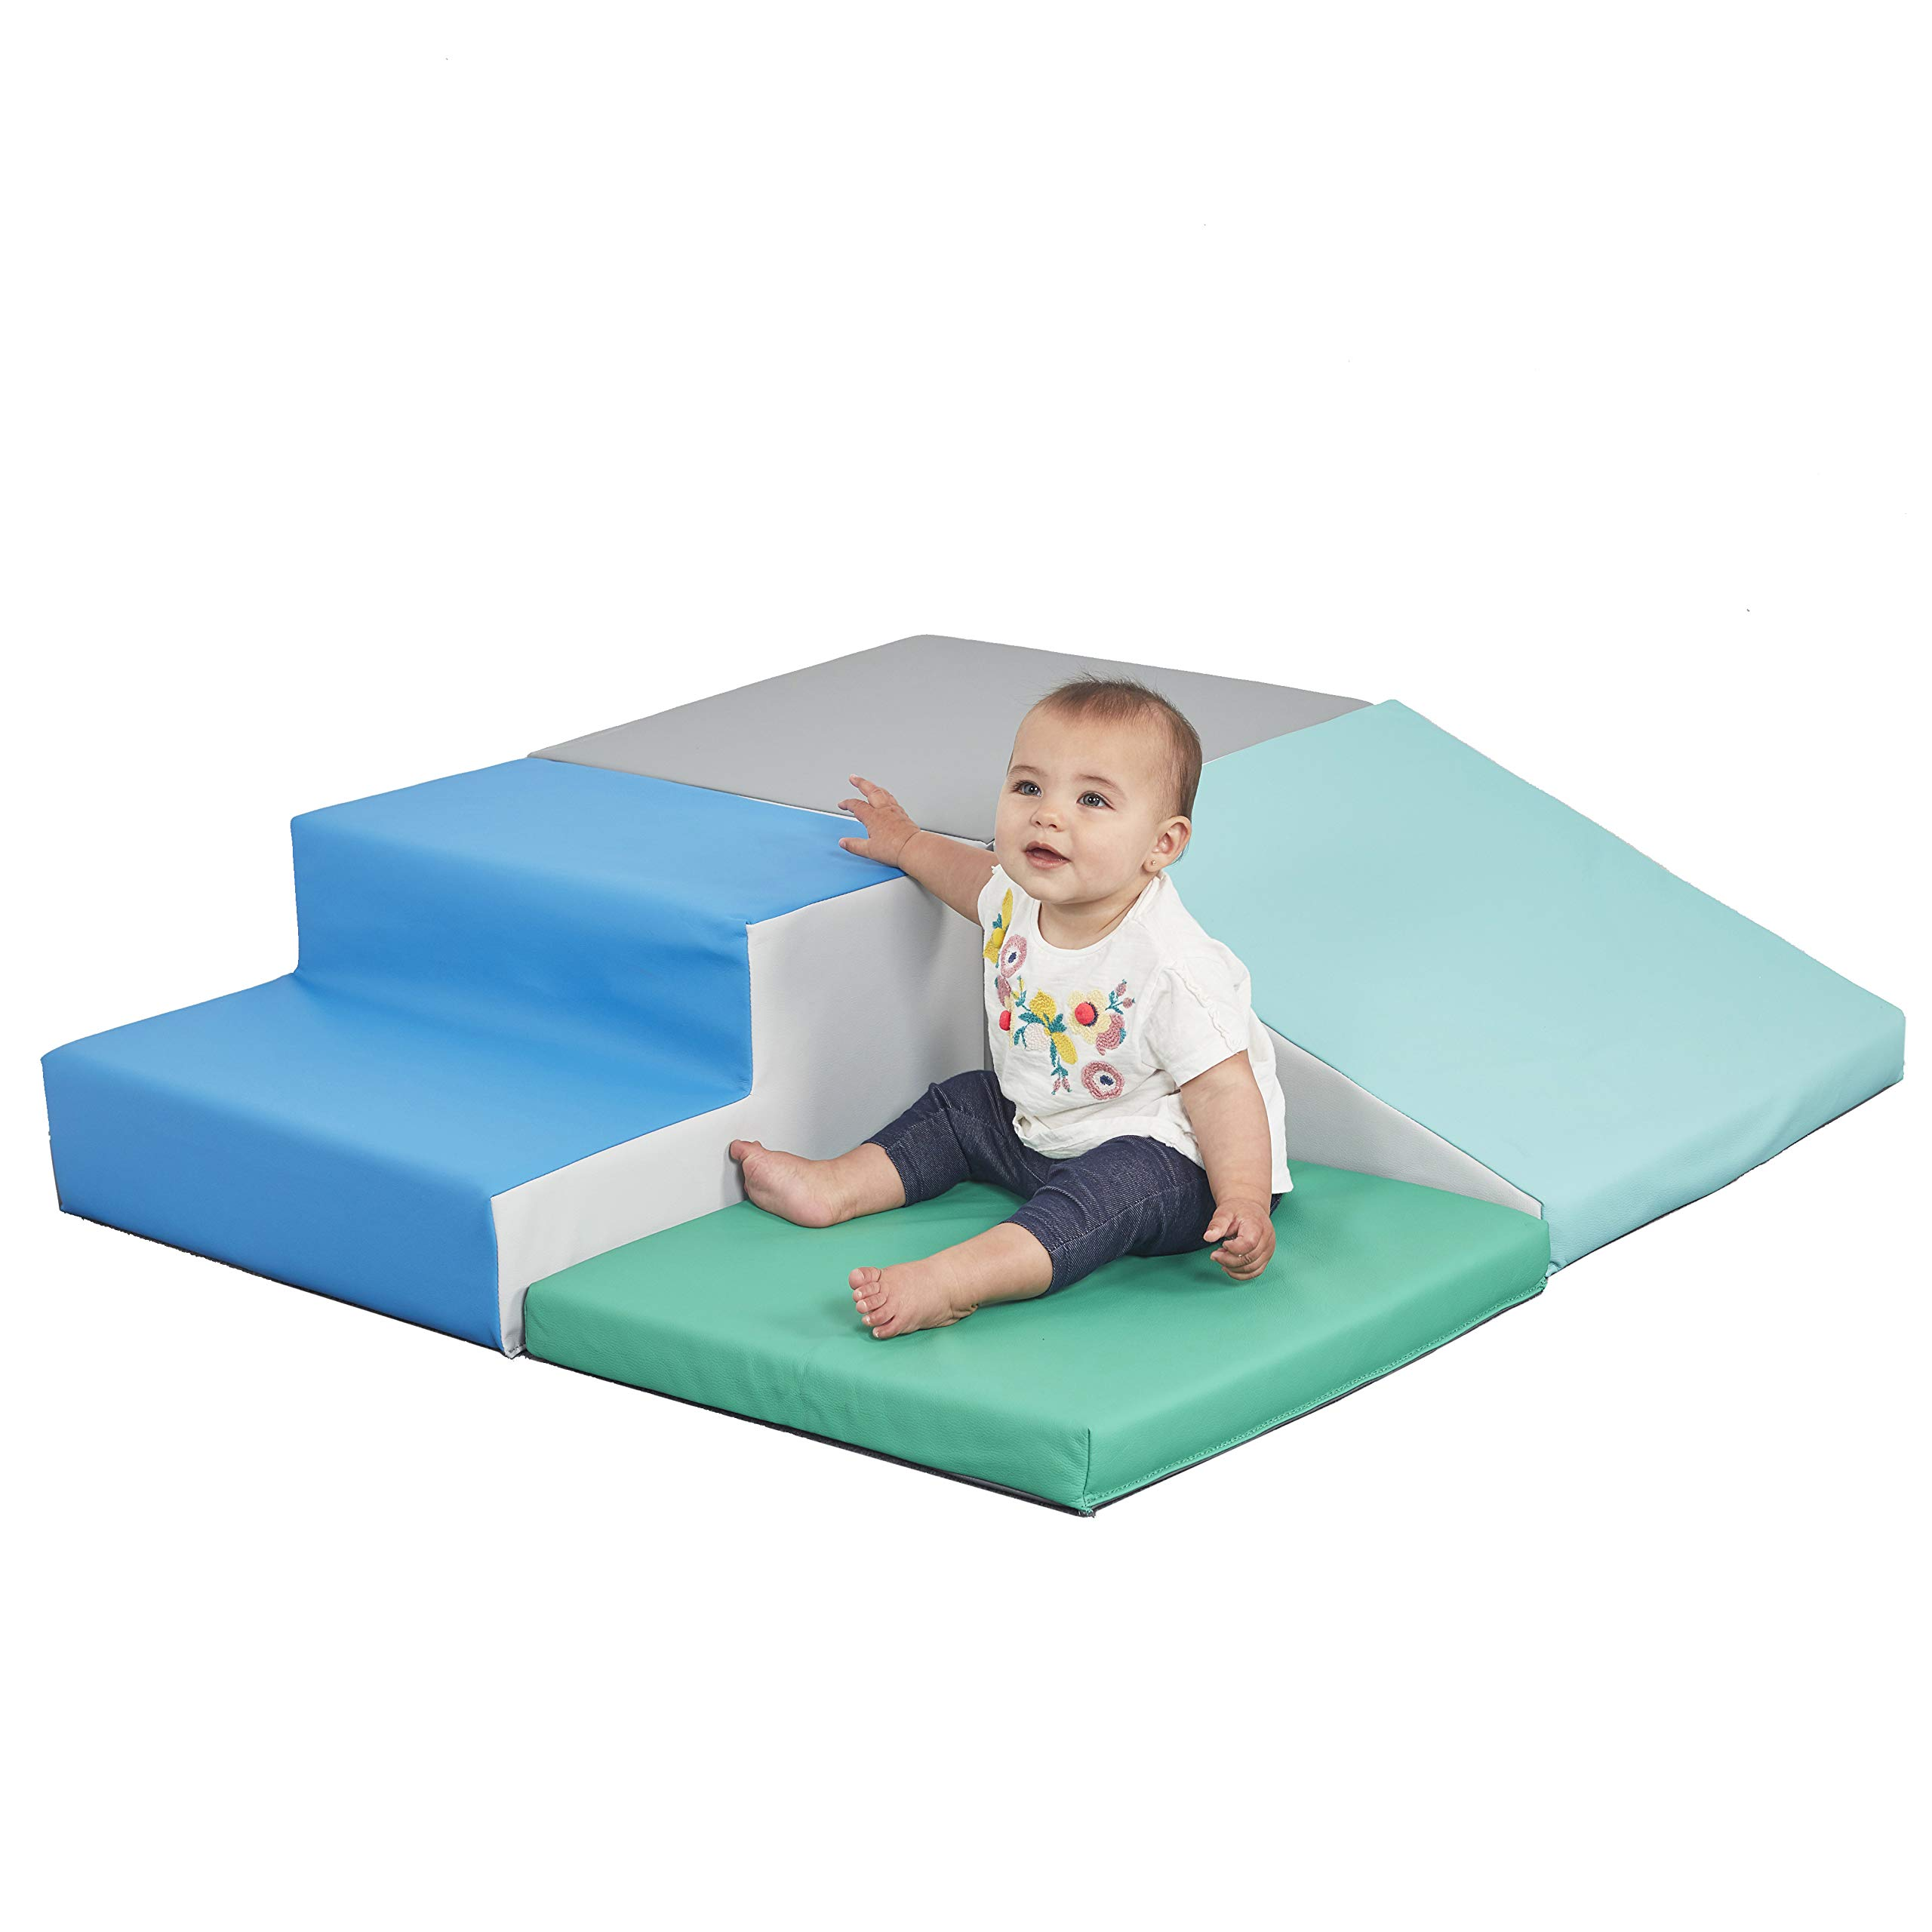 ECR4Kids SoftZone Little Me Foam Corner Climber - Indoor Active Play Structure for Toddlers and Kids - Soft Foam Play Set, Contemporary by ECR4Kids (Image #1)